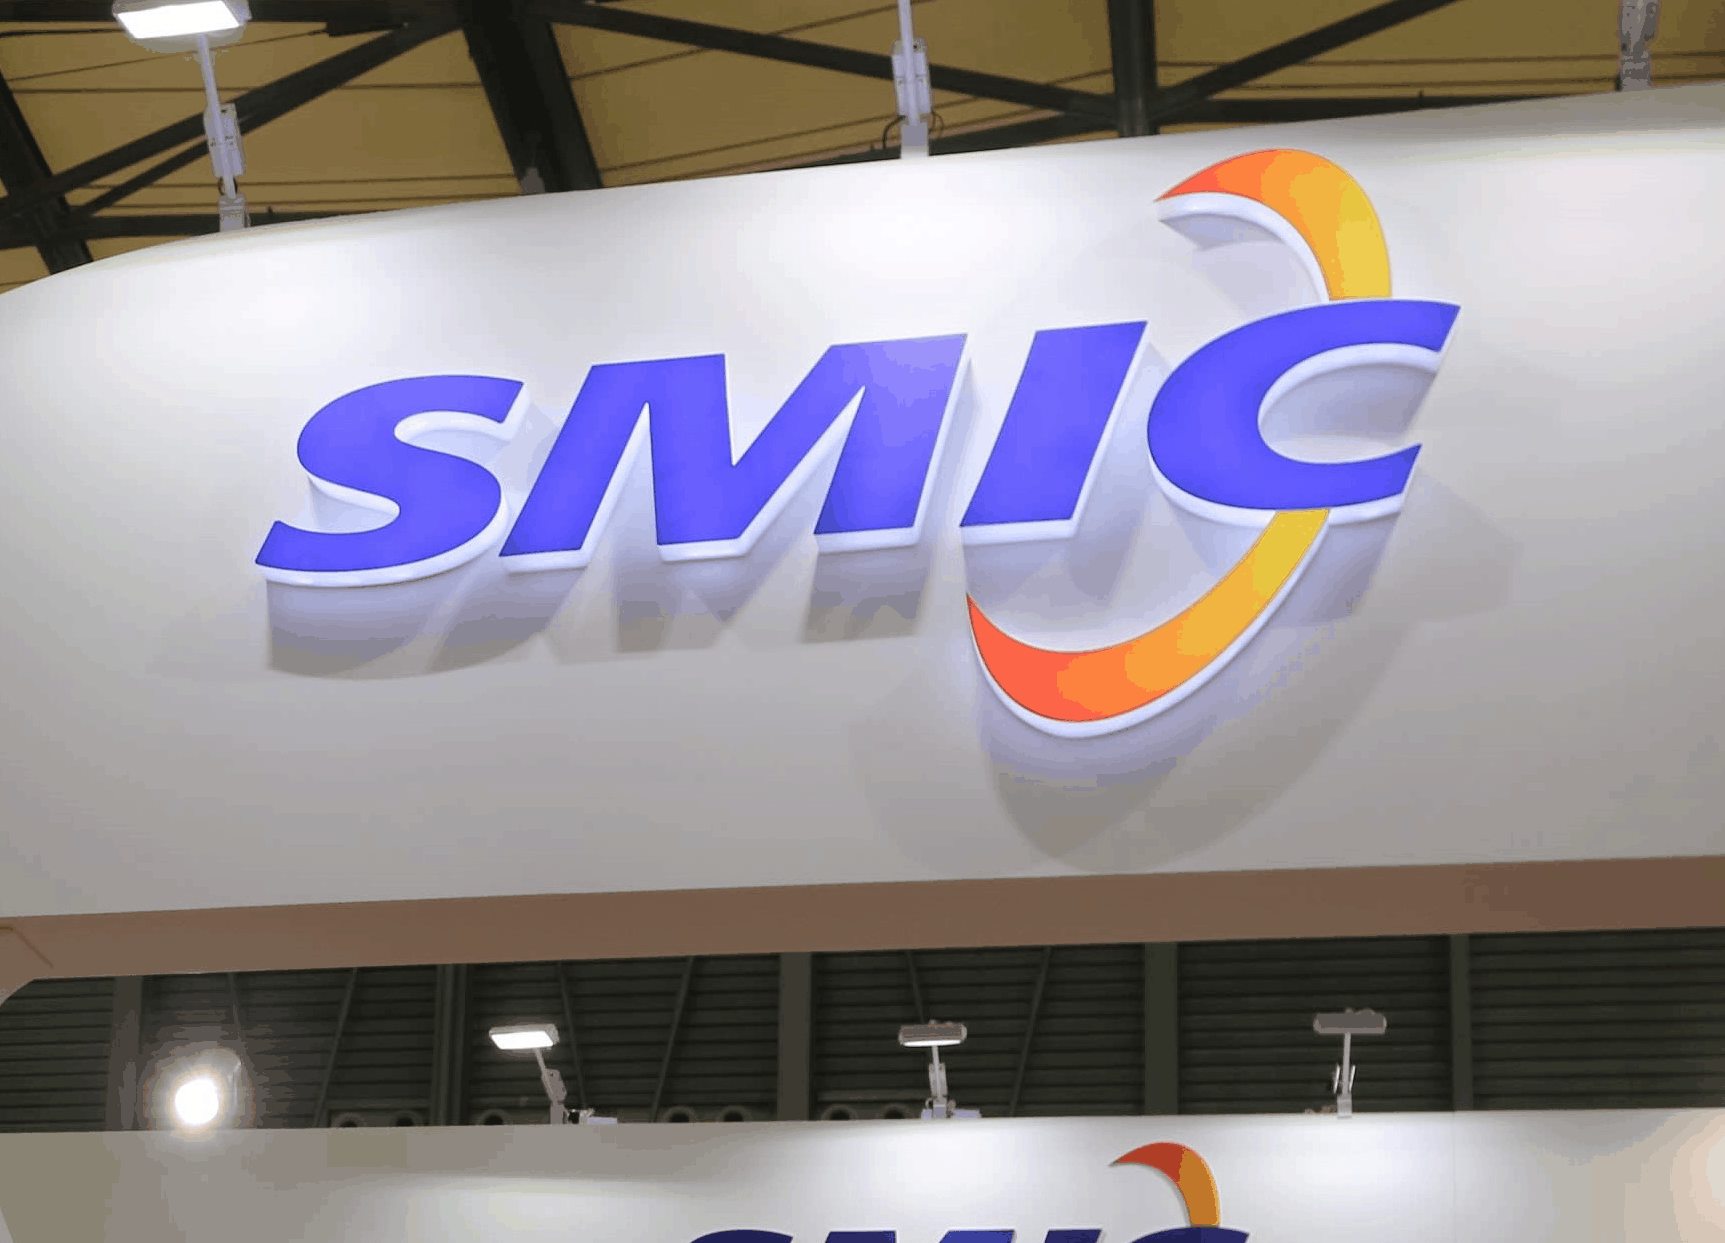 If SMIC gets banned will it hurt Huawei?